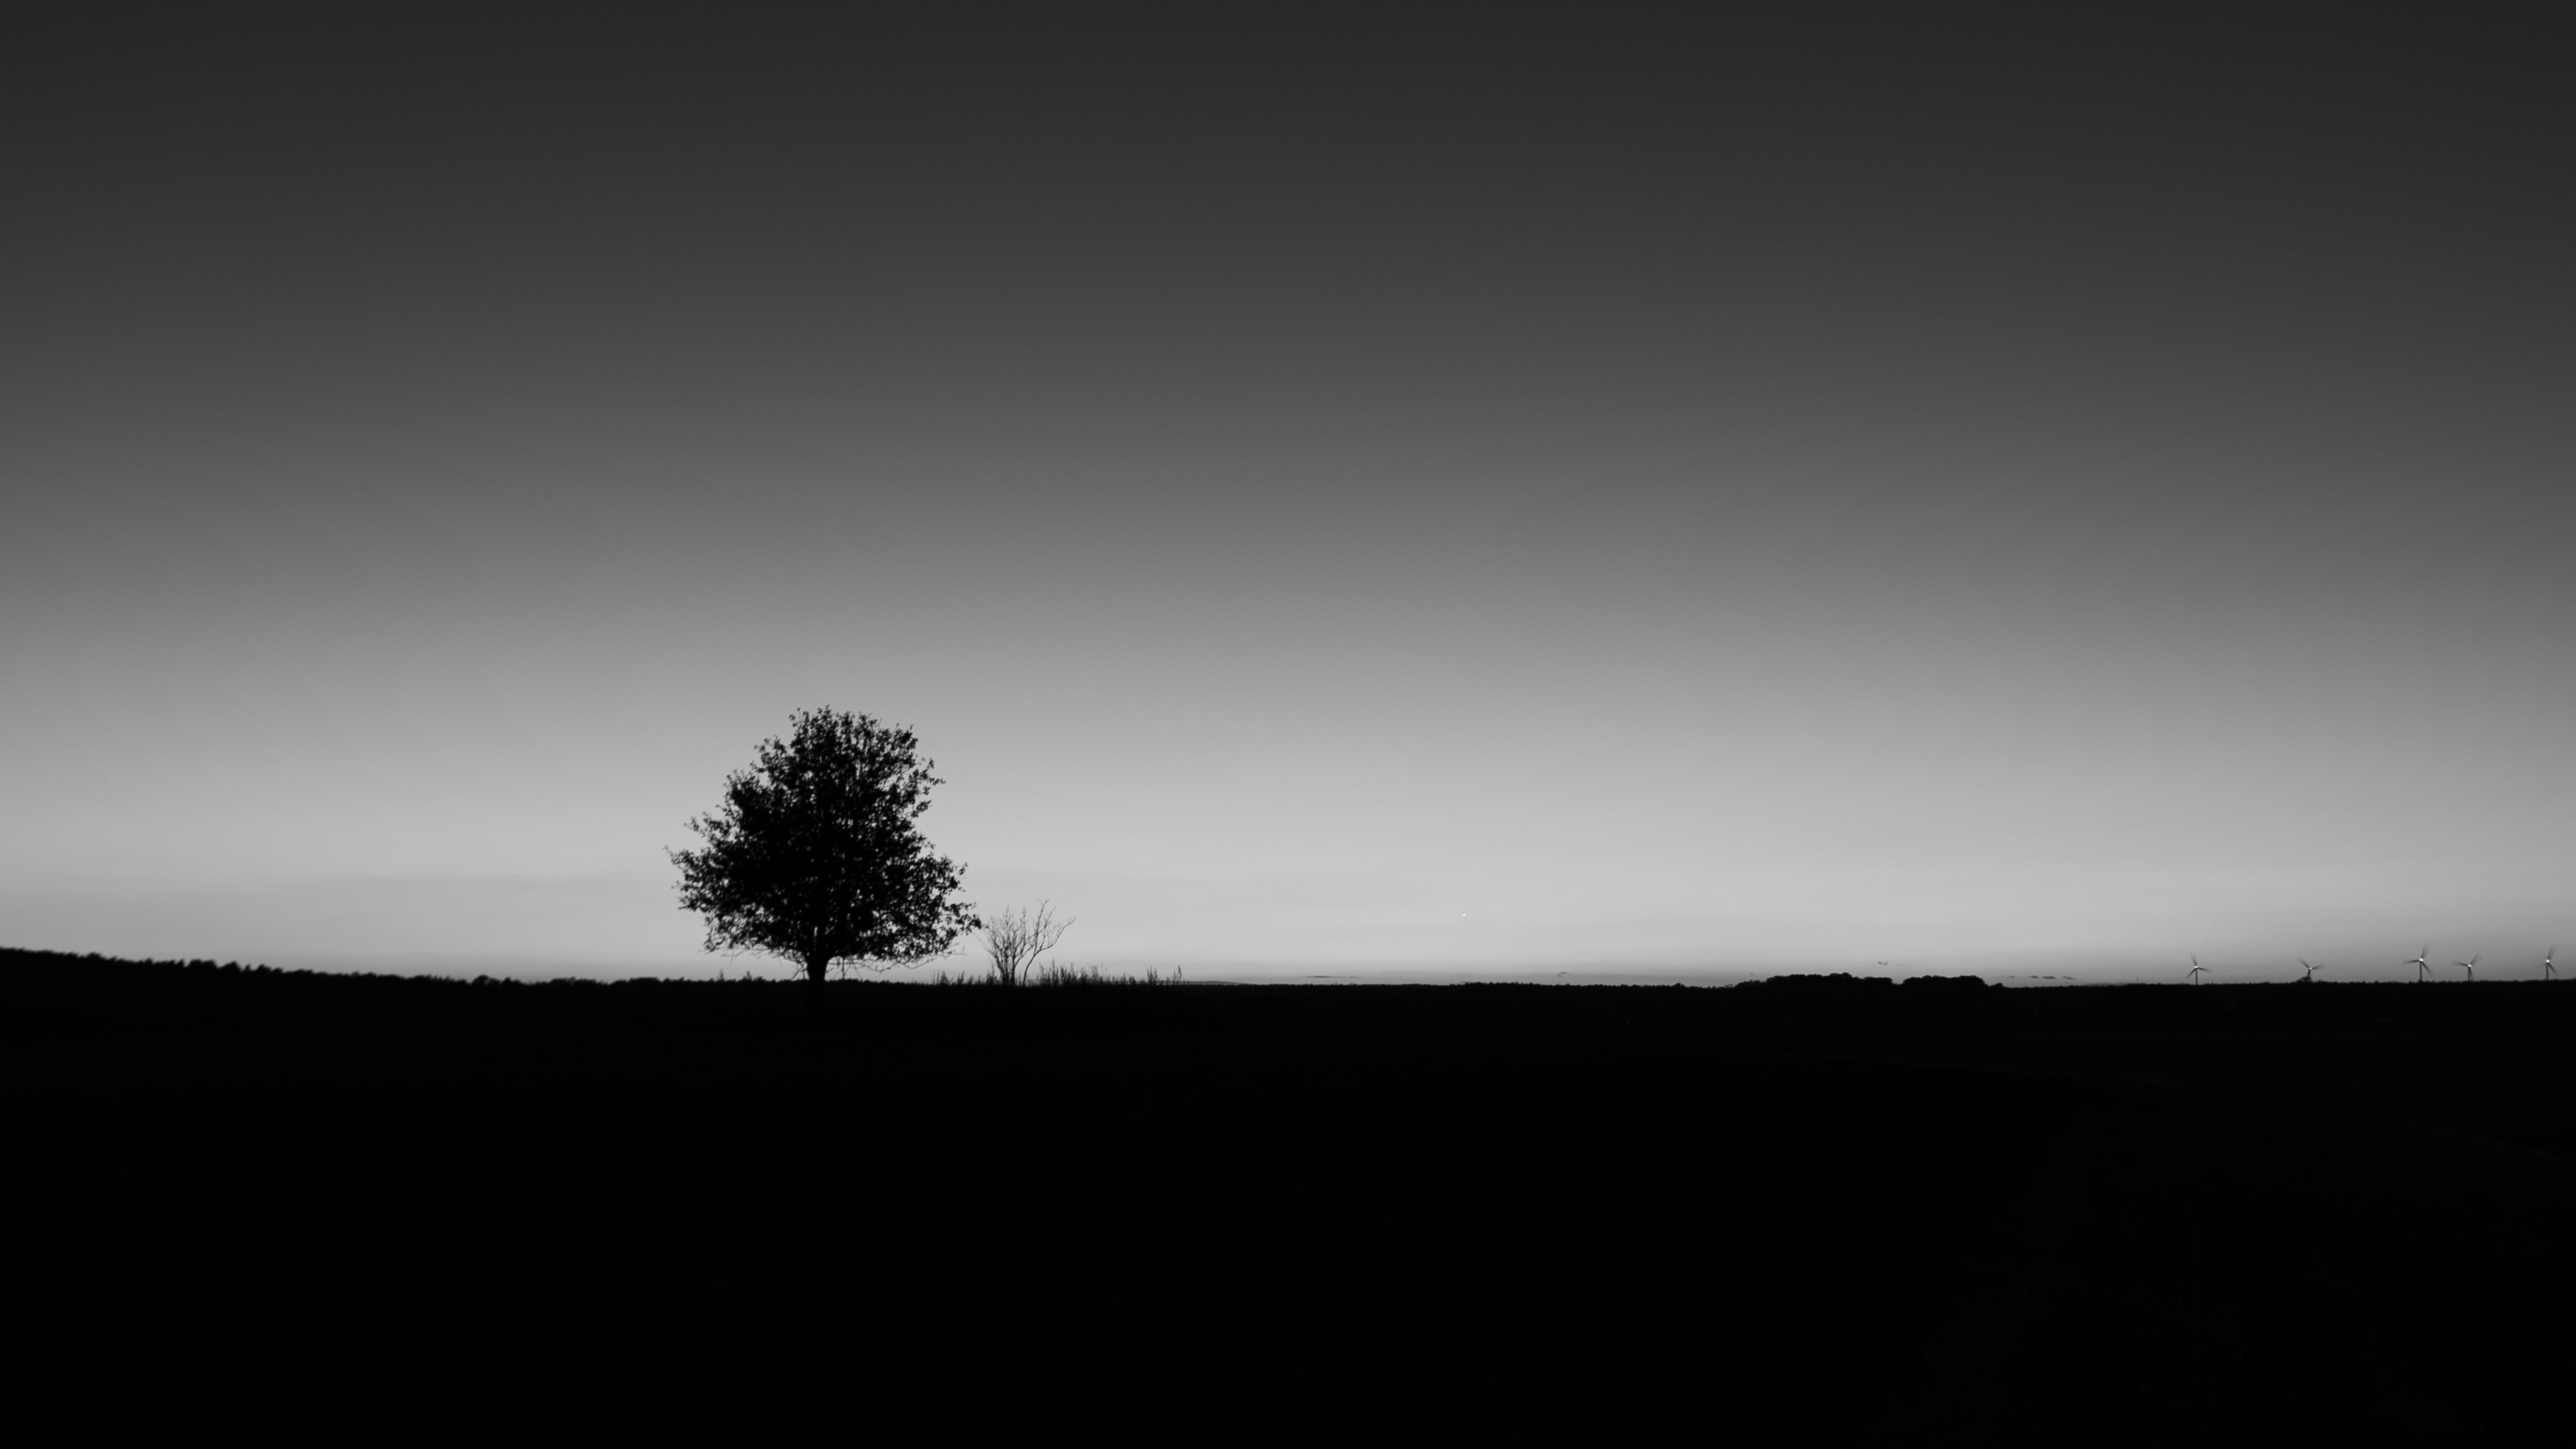 grayscale photo of silhouette of tree